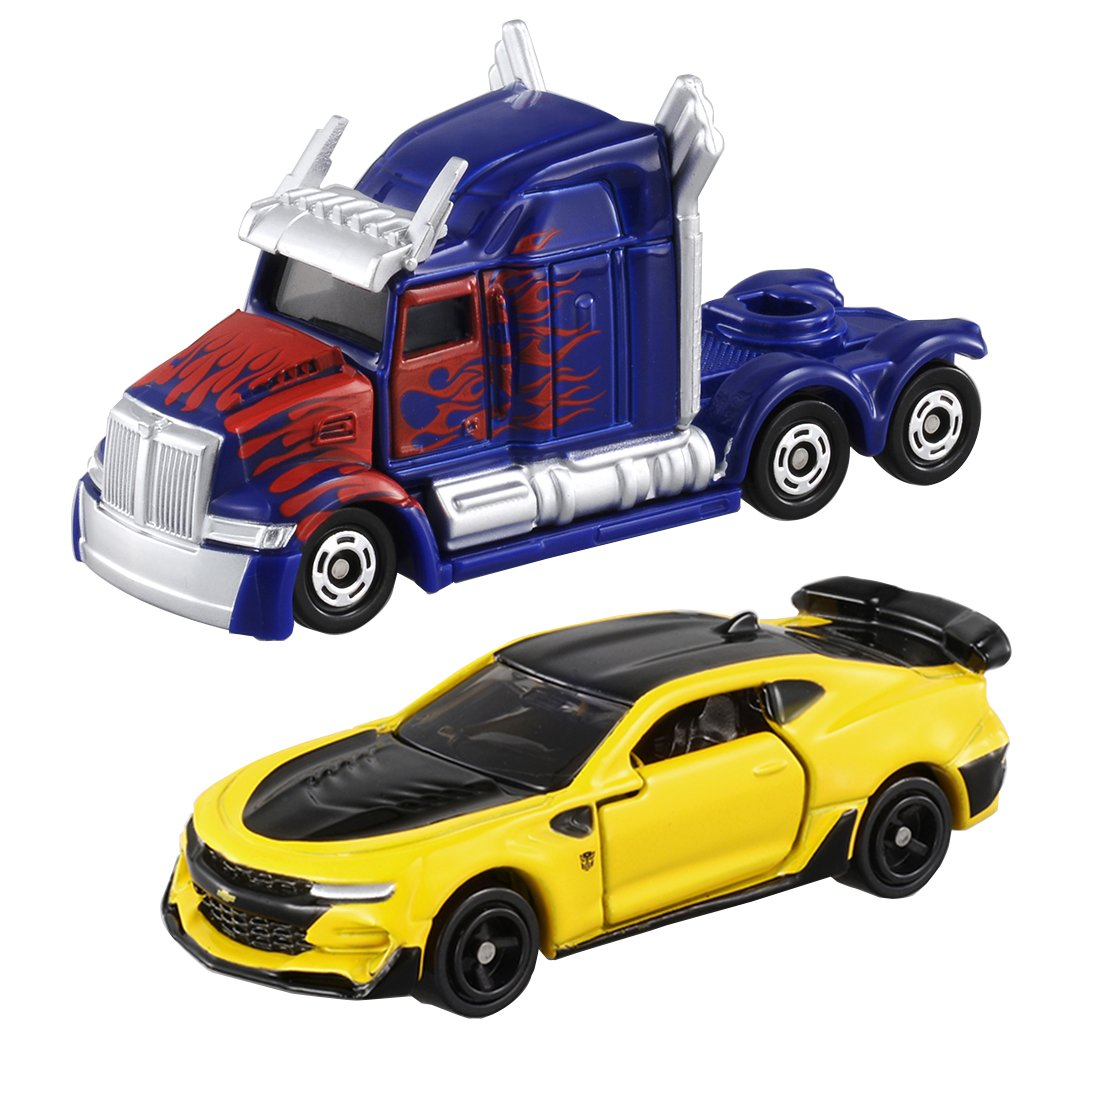 Tomica The Last Knight Optimus Prime & Bumblebee Cars